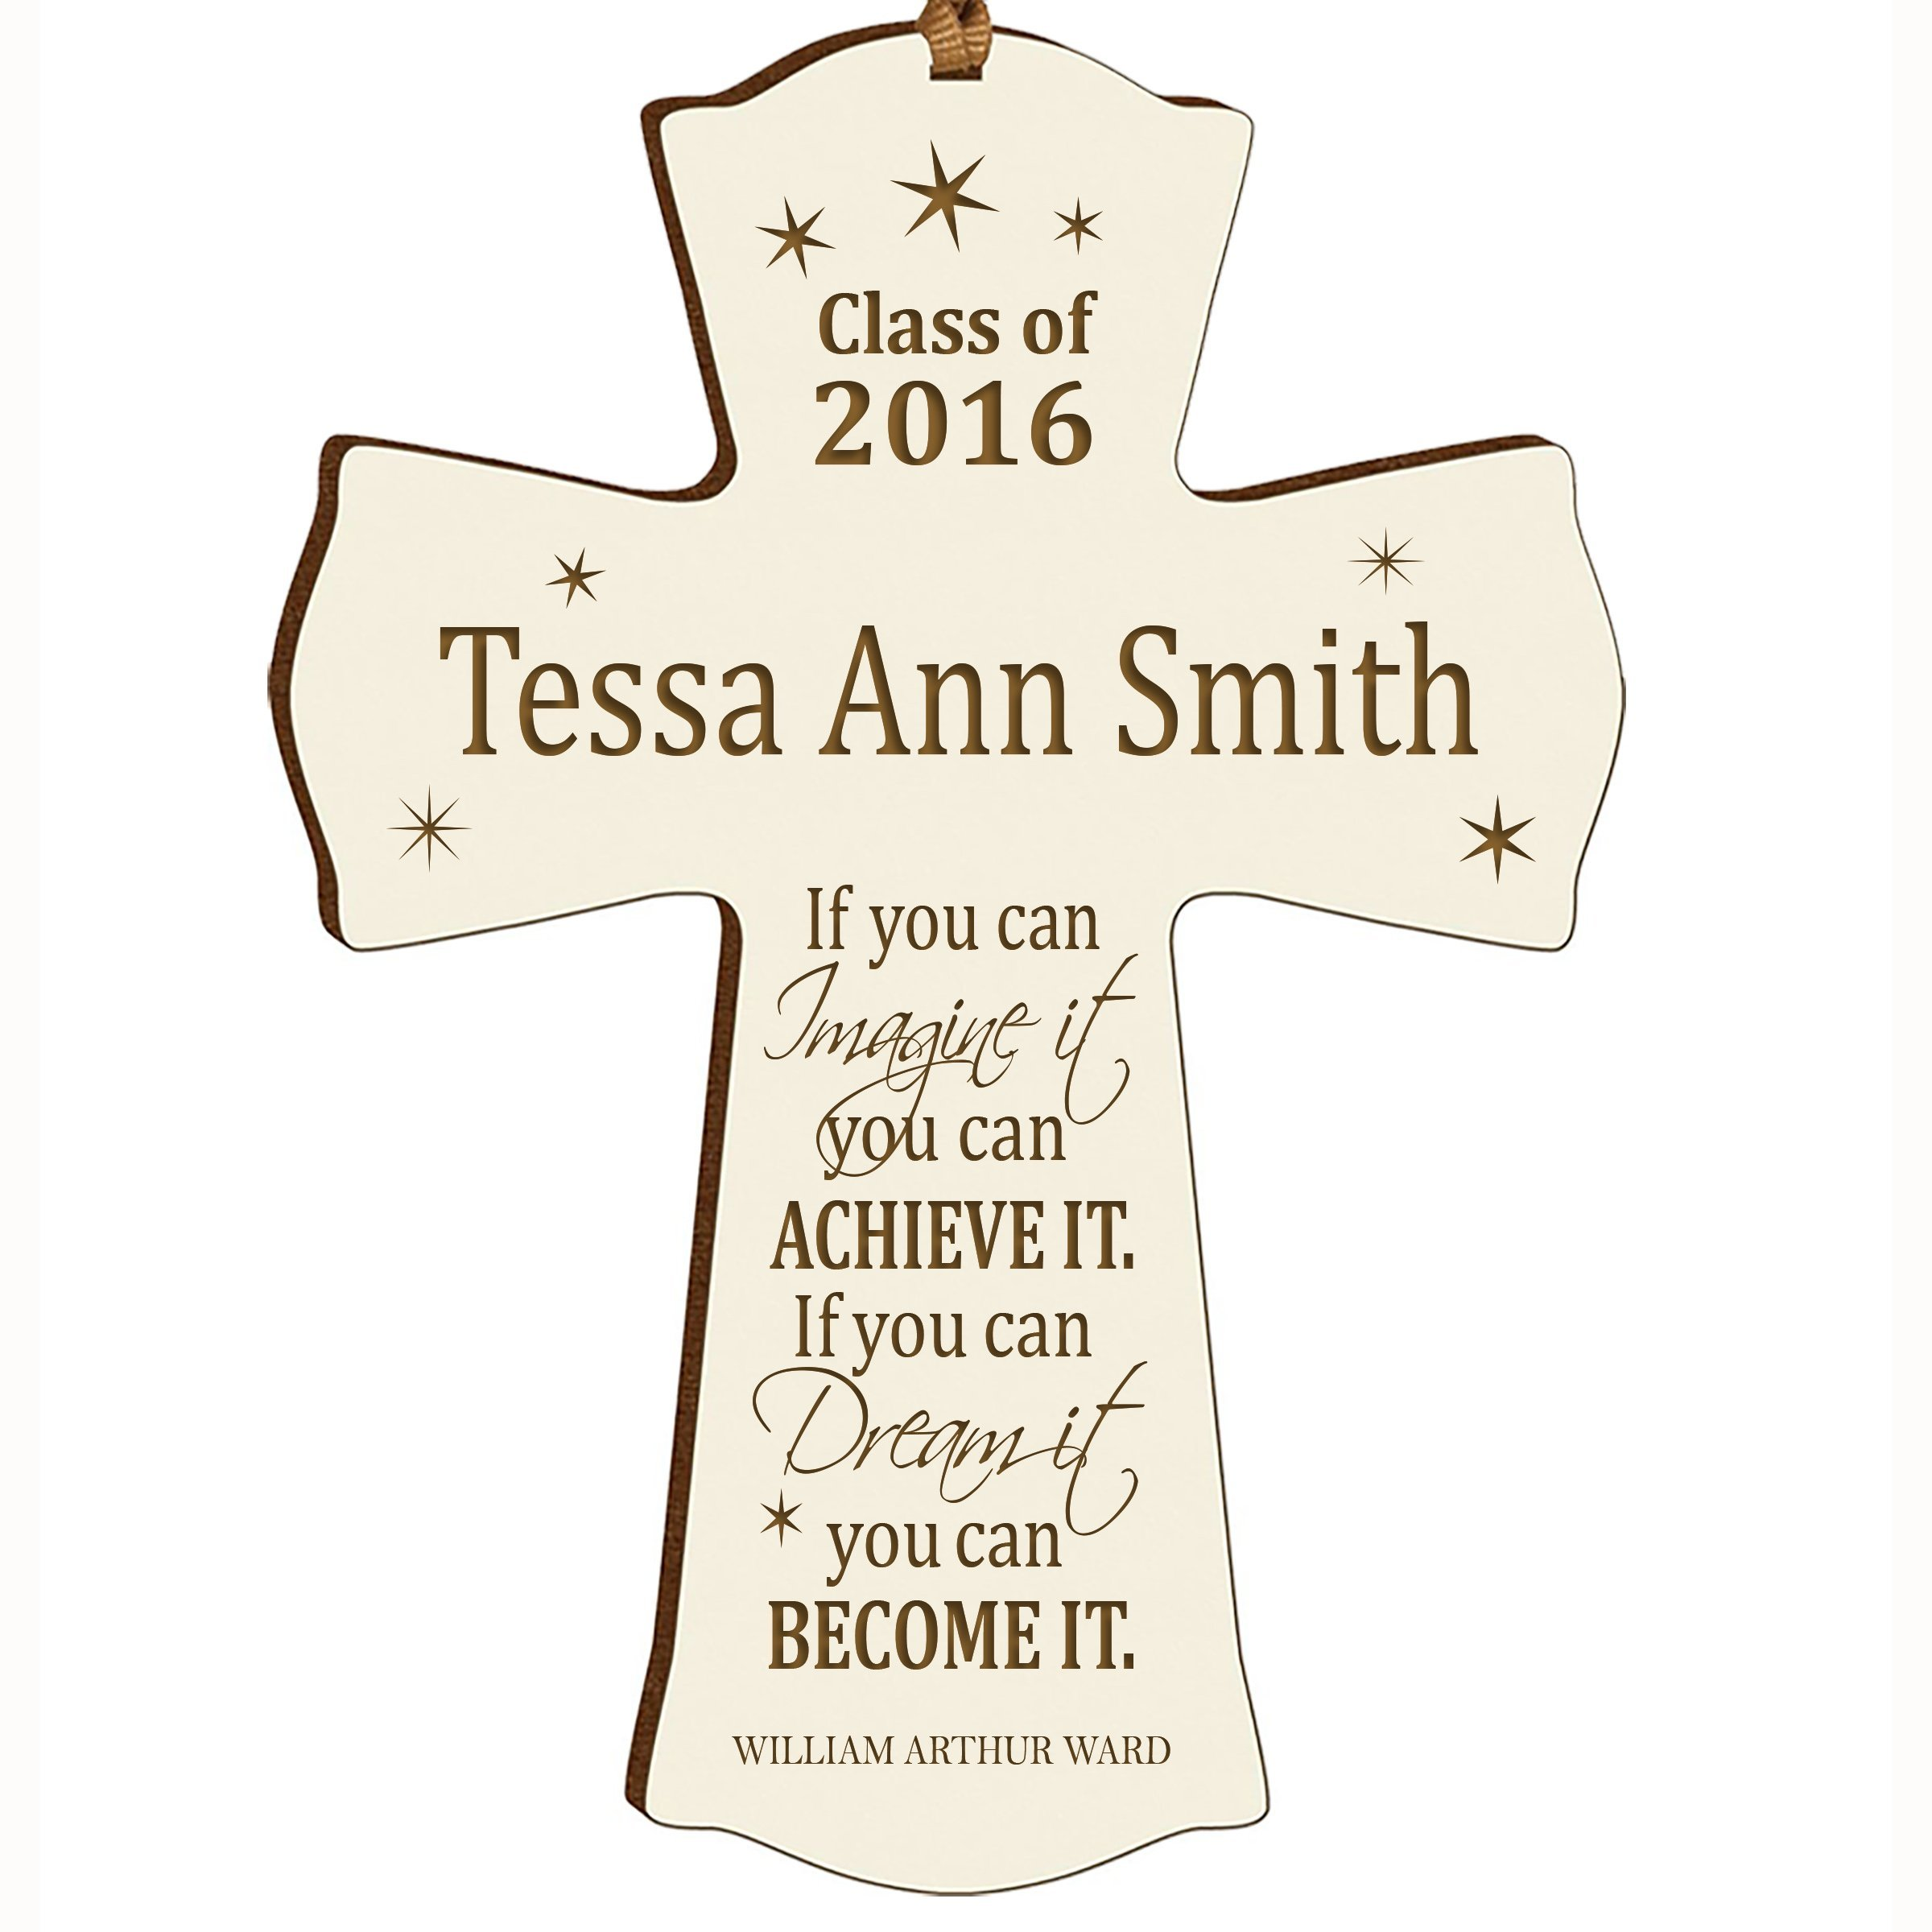 LifeSong Milestones Personalized Wall Cross Graduation gifts If you can IMAGINE it you can ACHIEVE IT if you can Dream it you can BECOME IT (4.5'' x 6'', White)